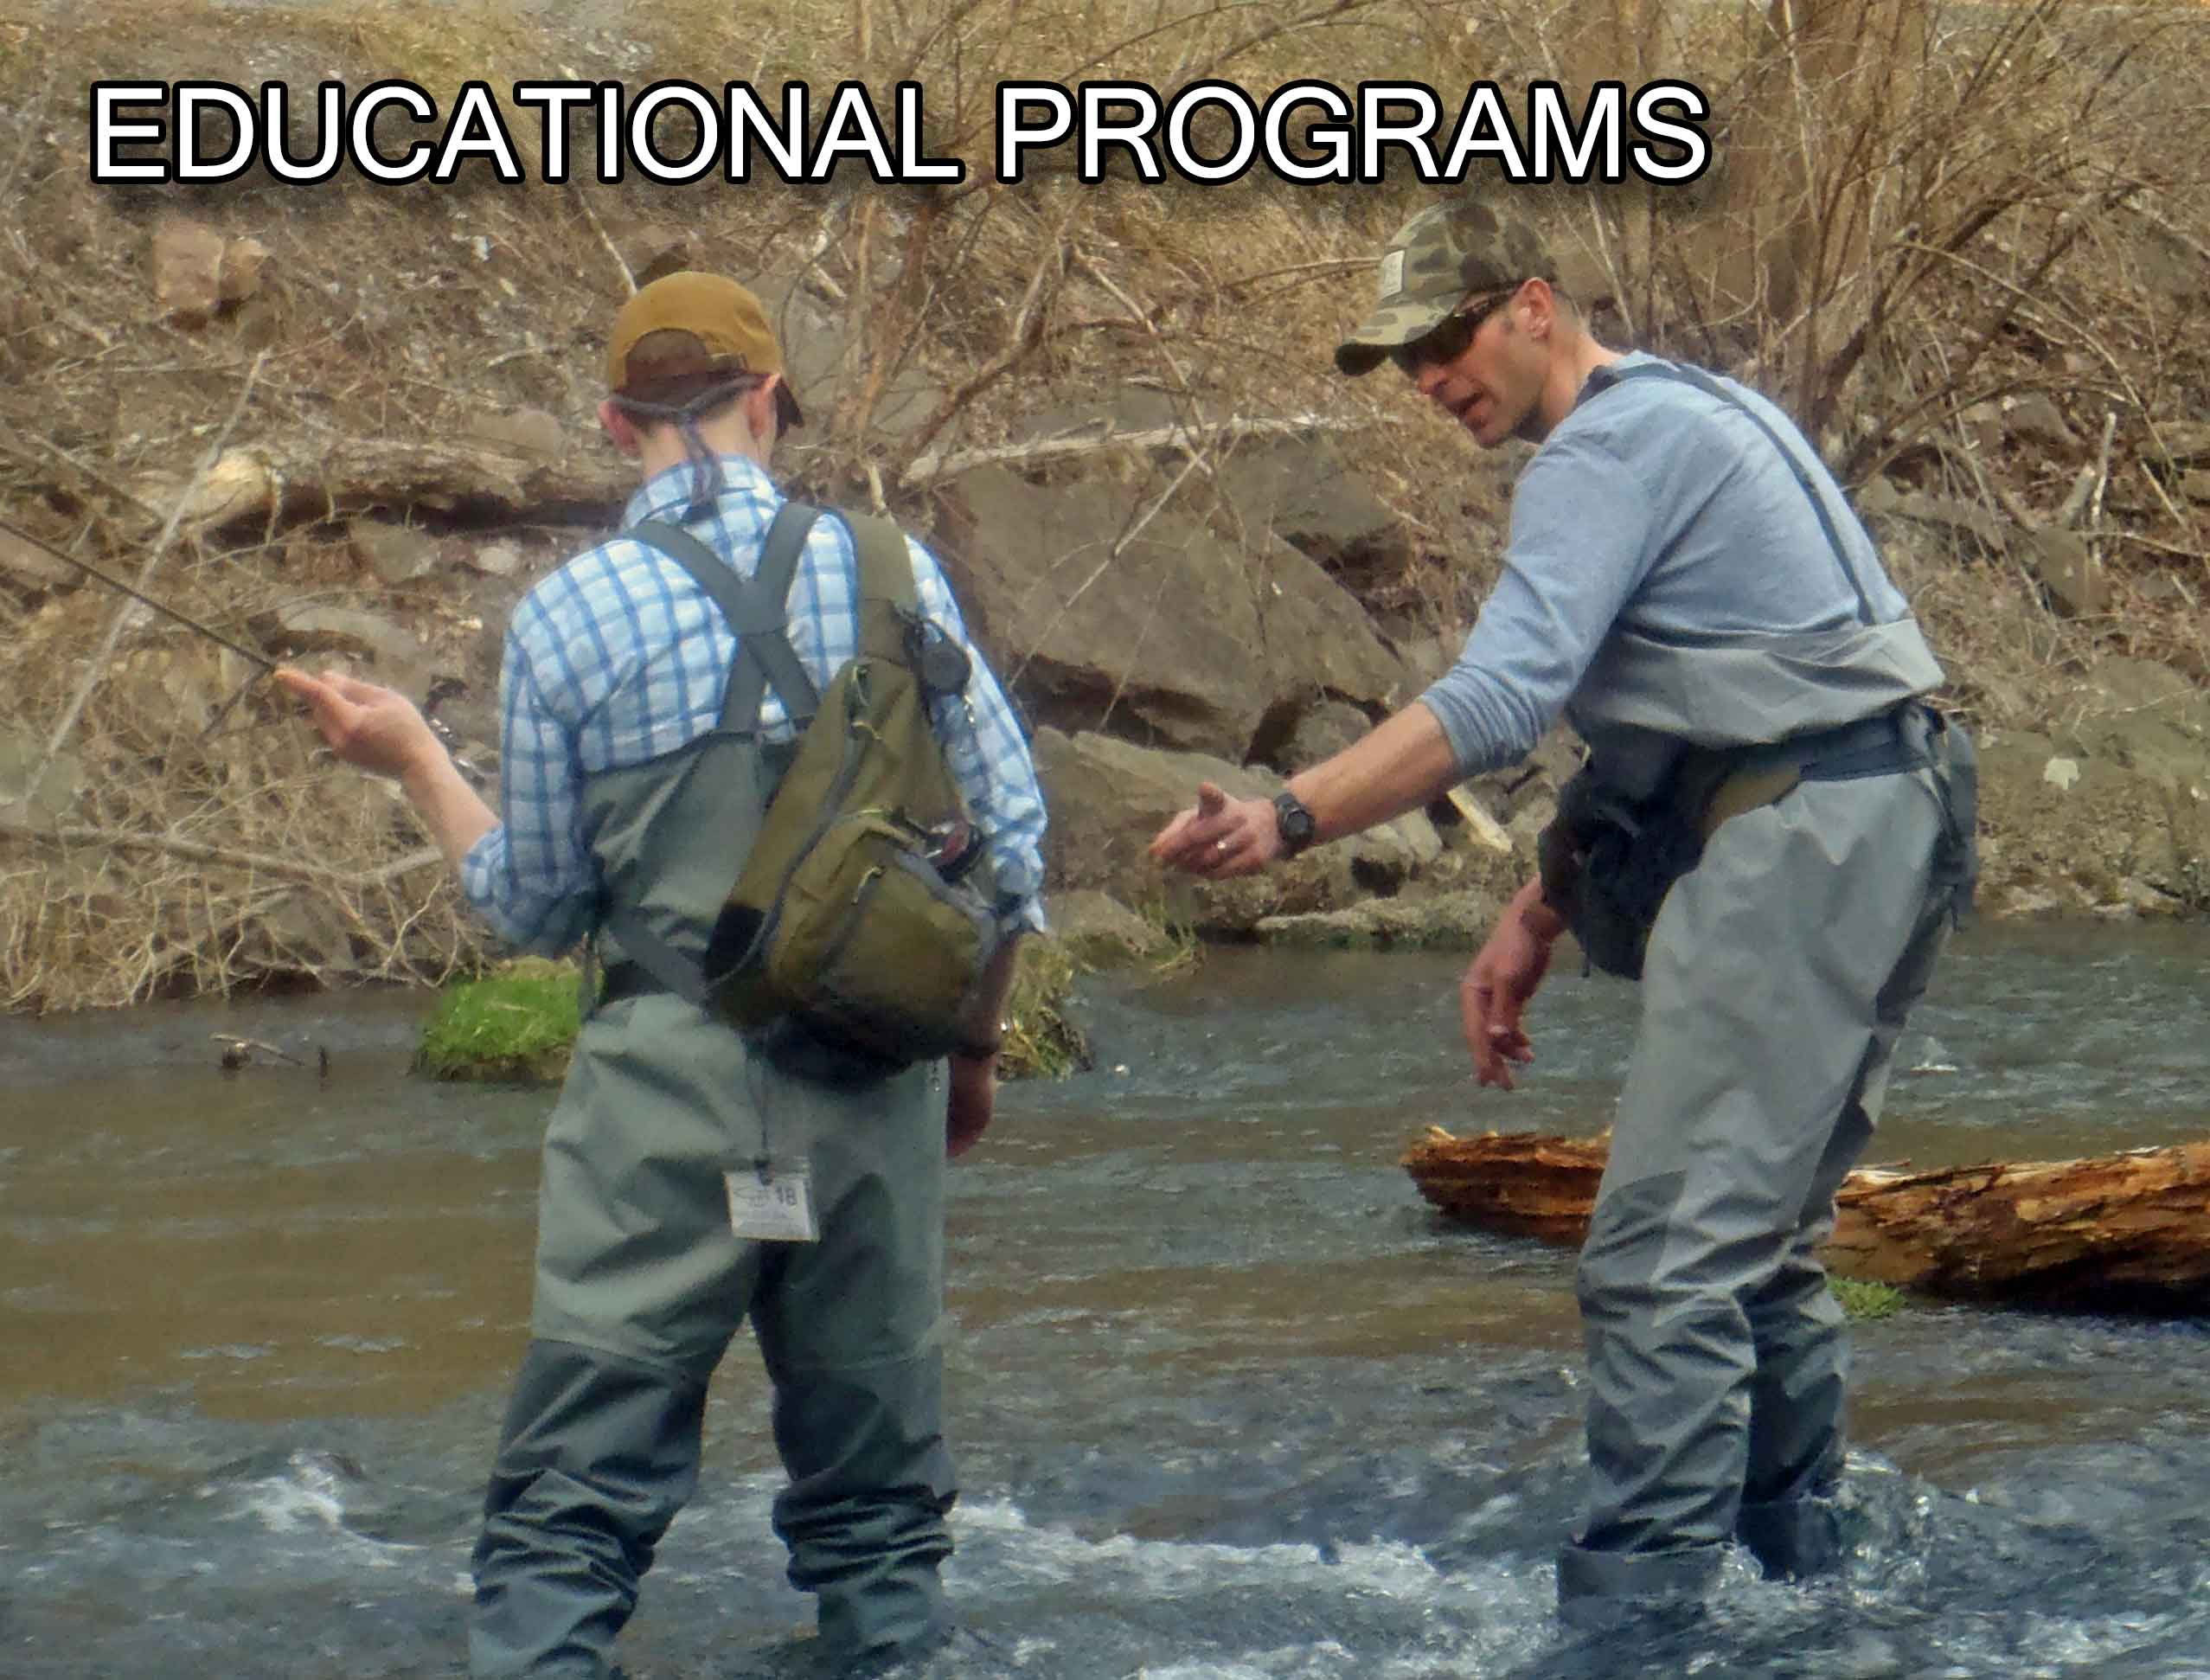 Learn From The Experts, Come Join George Daniel, Dave Allbaugh and Rick Nyles On A Fly Fishing Educational Trip To Central PA.